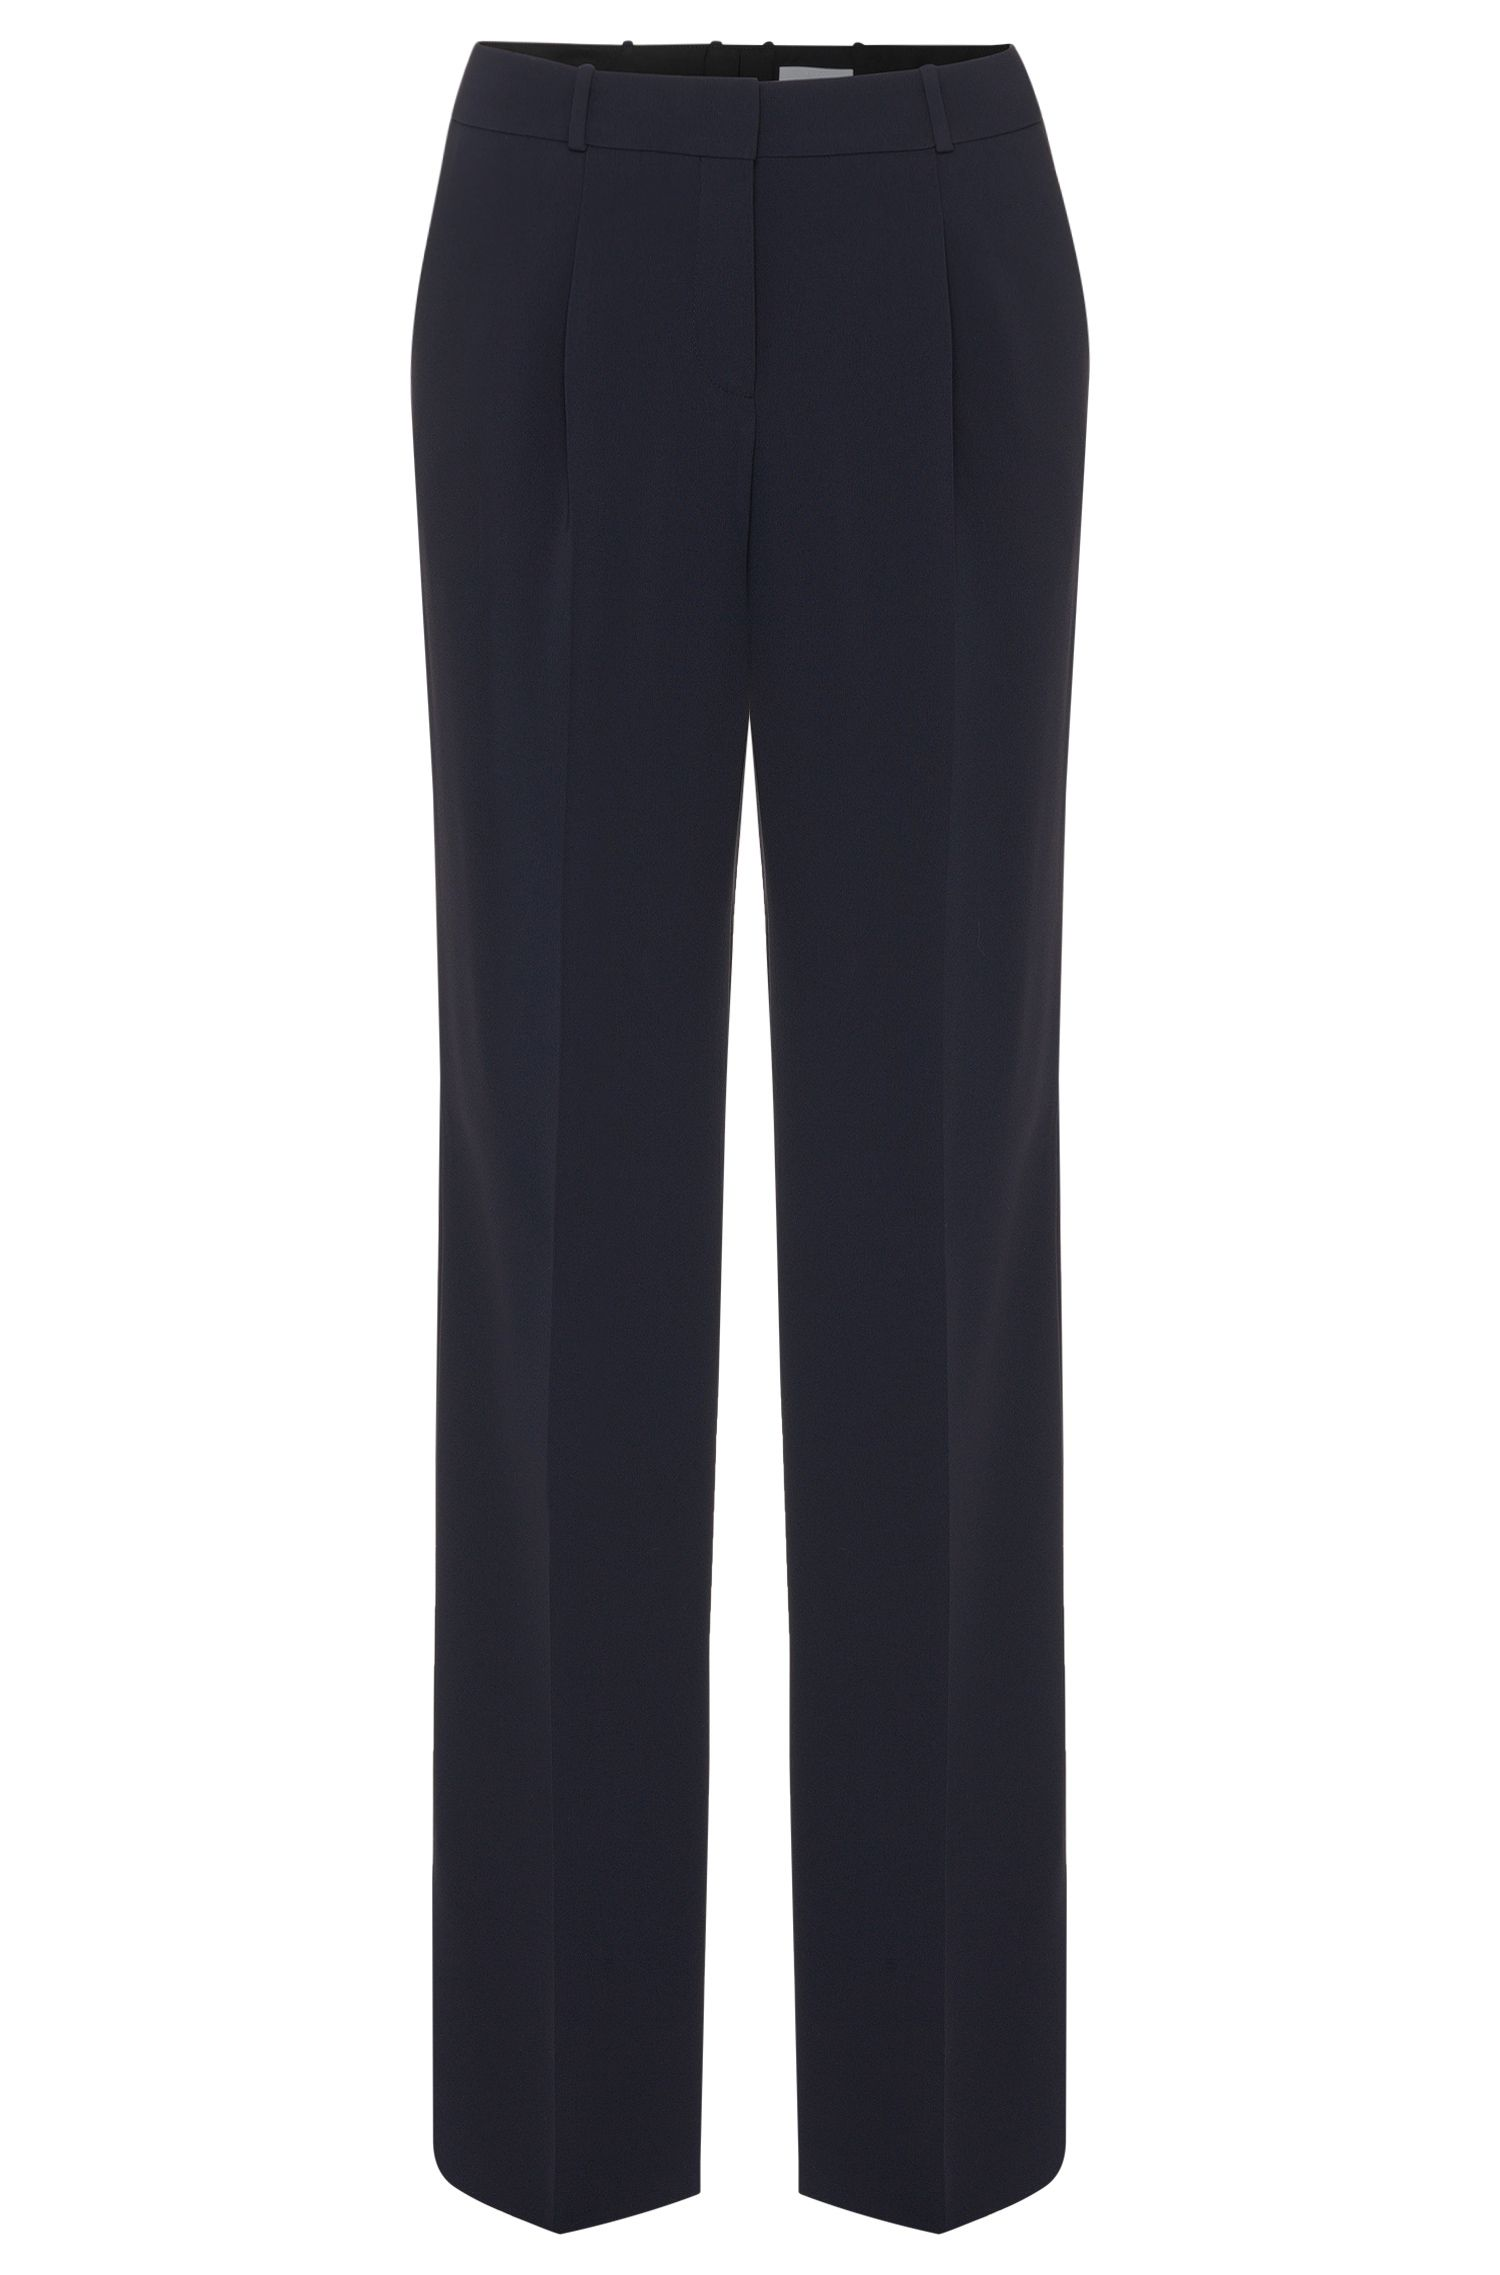 'Tewena' | Relaxed Fit Wide Leg Dress Pants